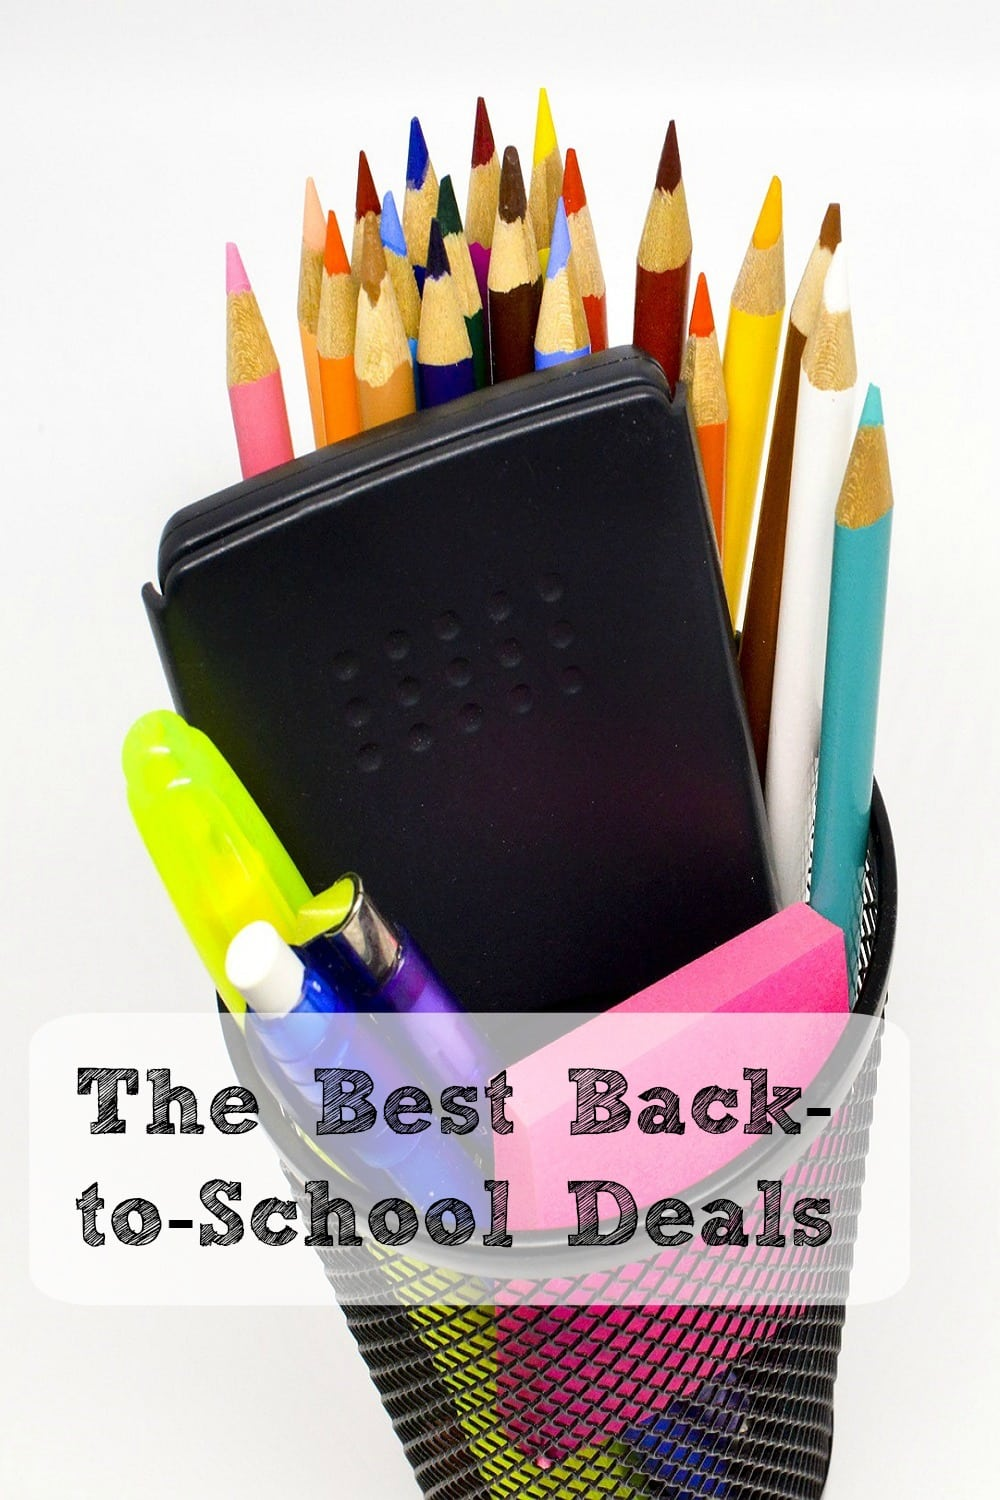 The Best Back-to-school Deals